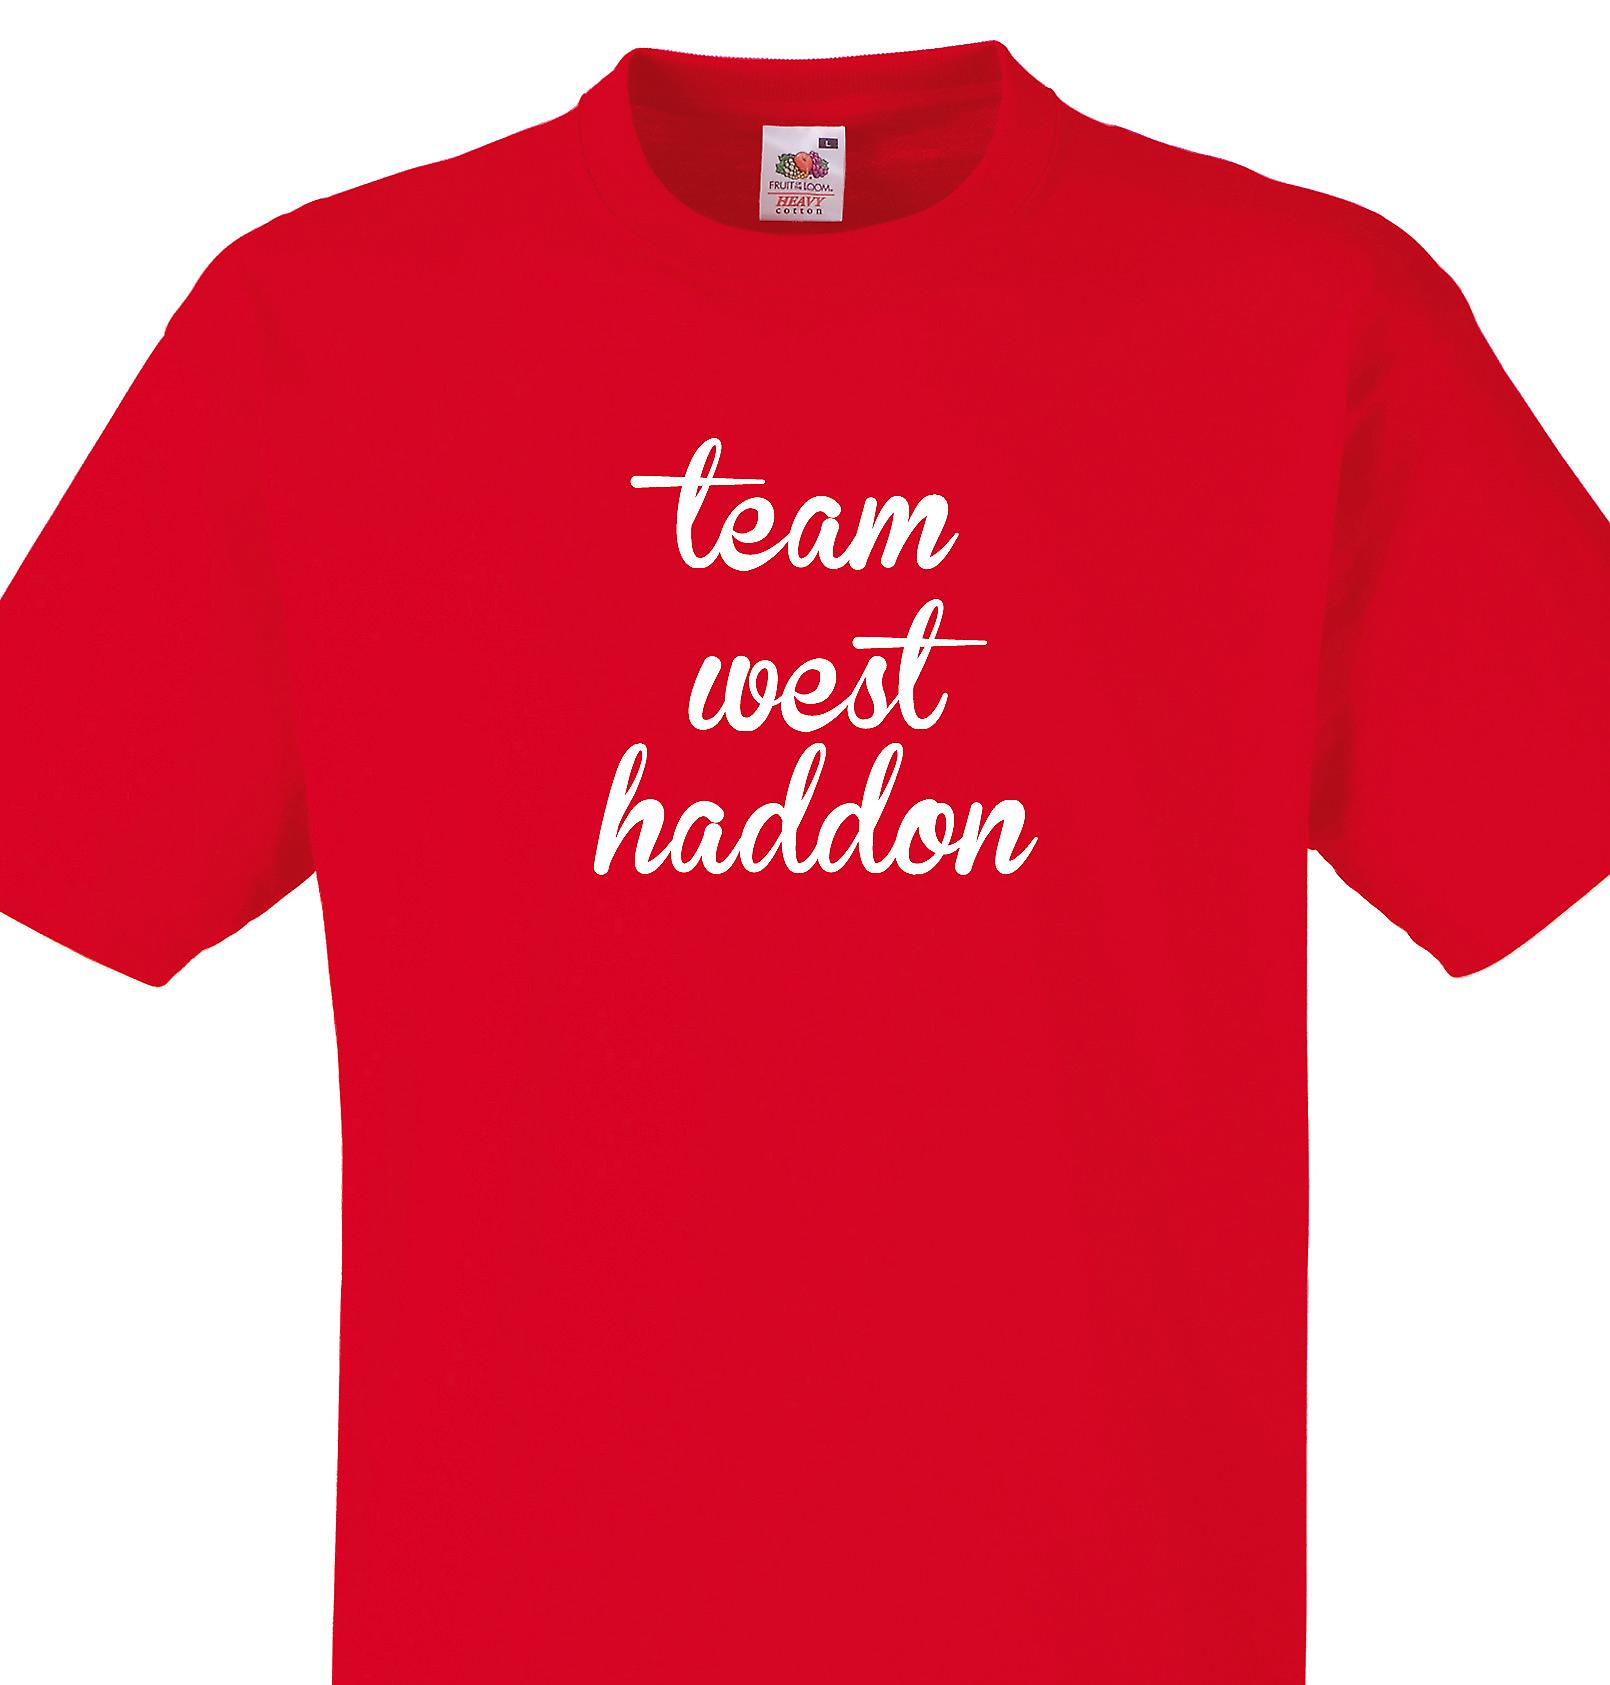 Team West haddon Red T shirt